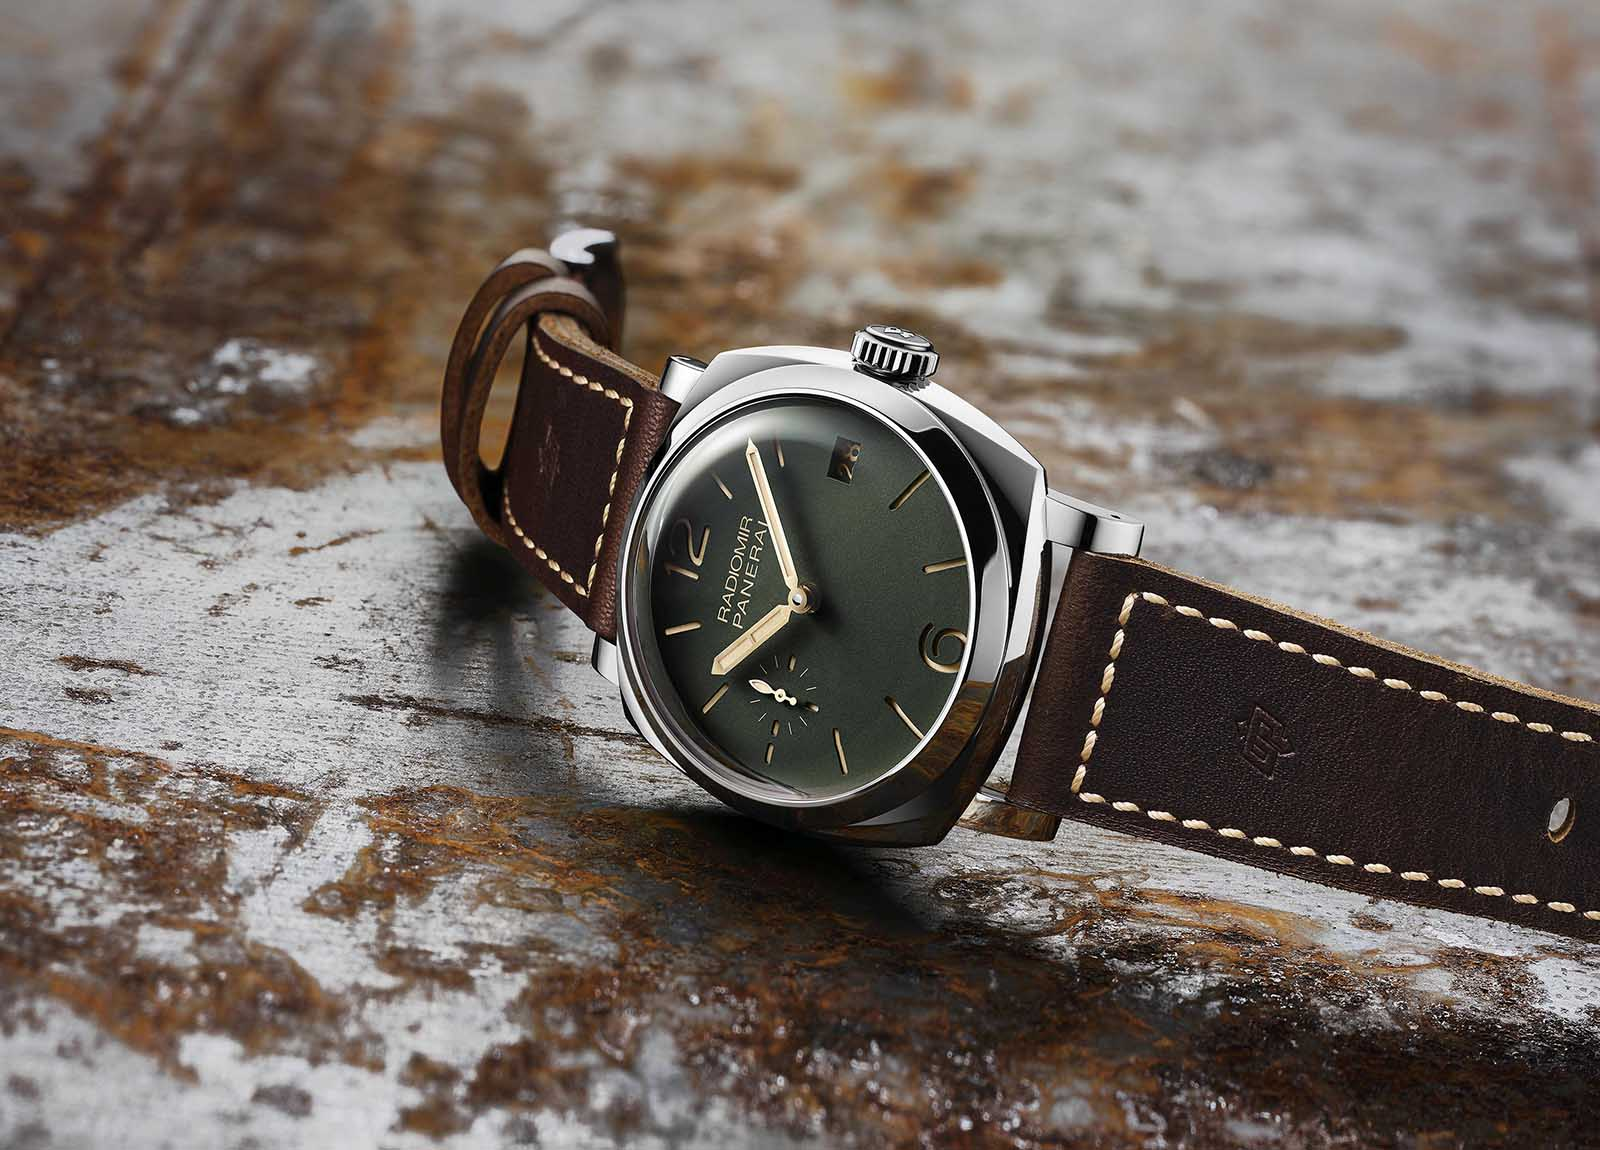 Radiomir 1940 3 Days Acciaio Green Dial- 47 mm - PAM736